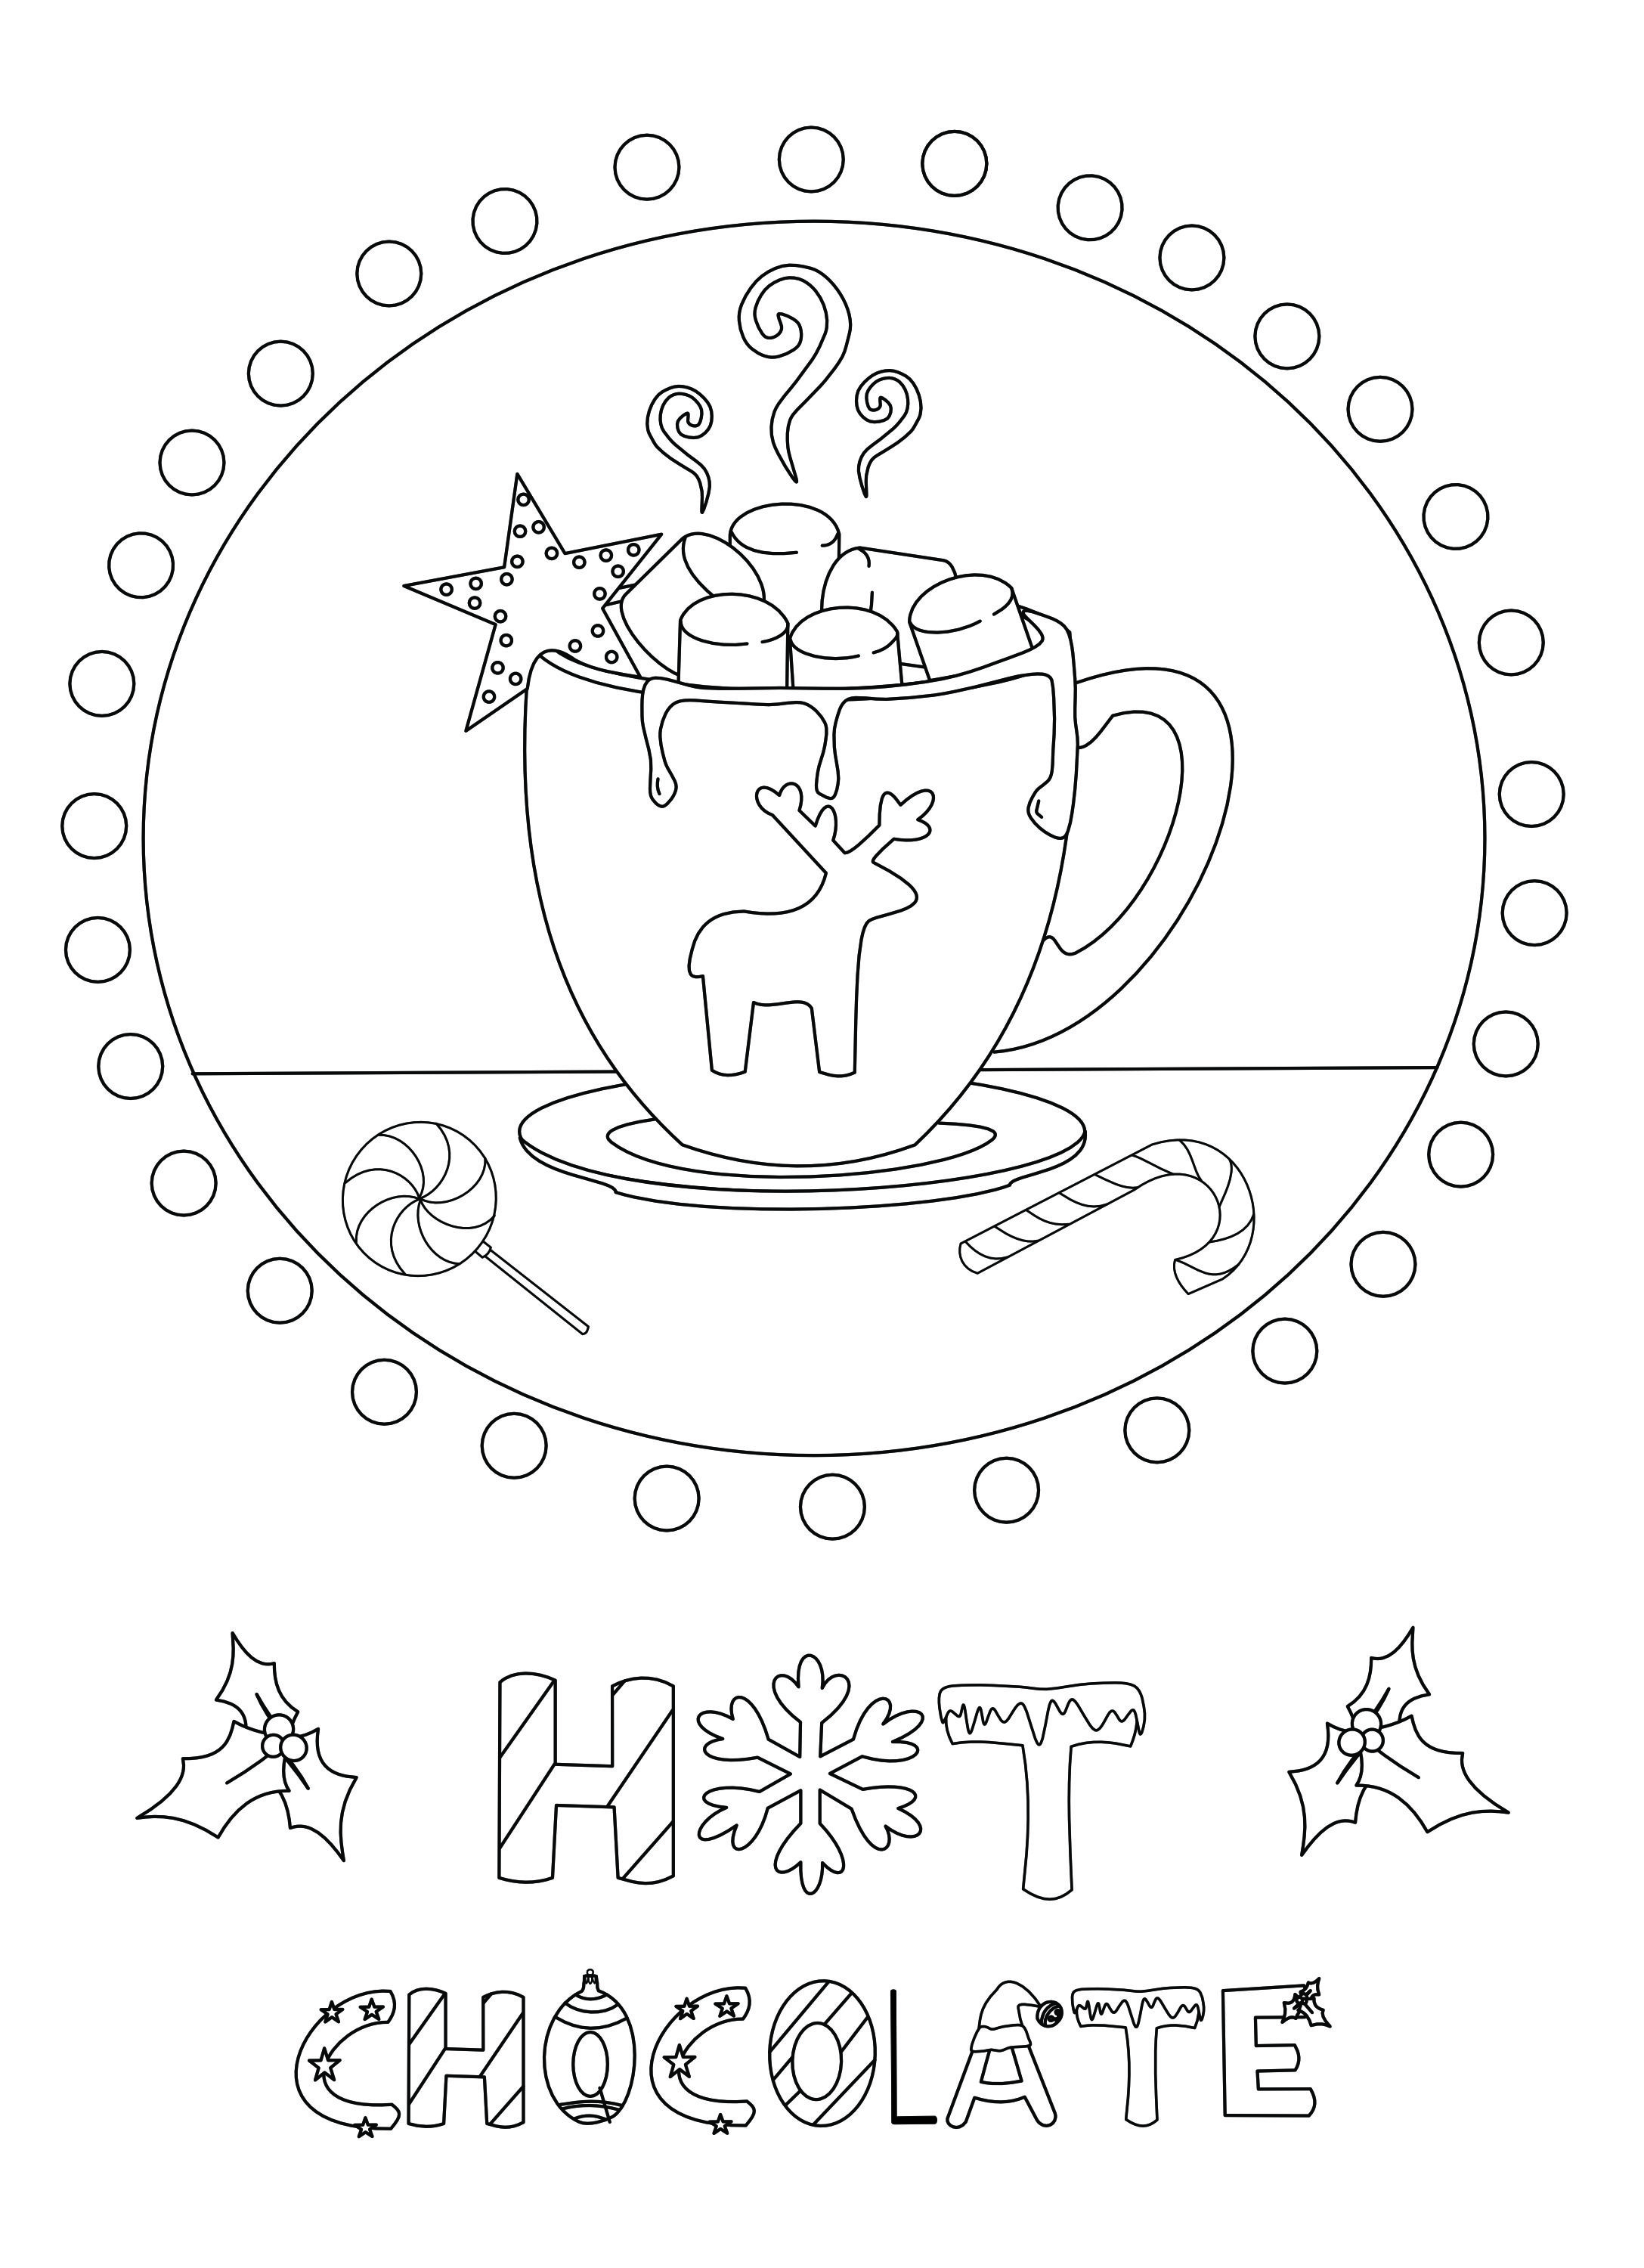 Free printable Hot Chocolate coloring page from the Ornaments of